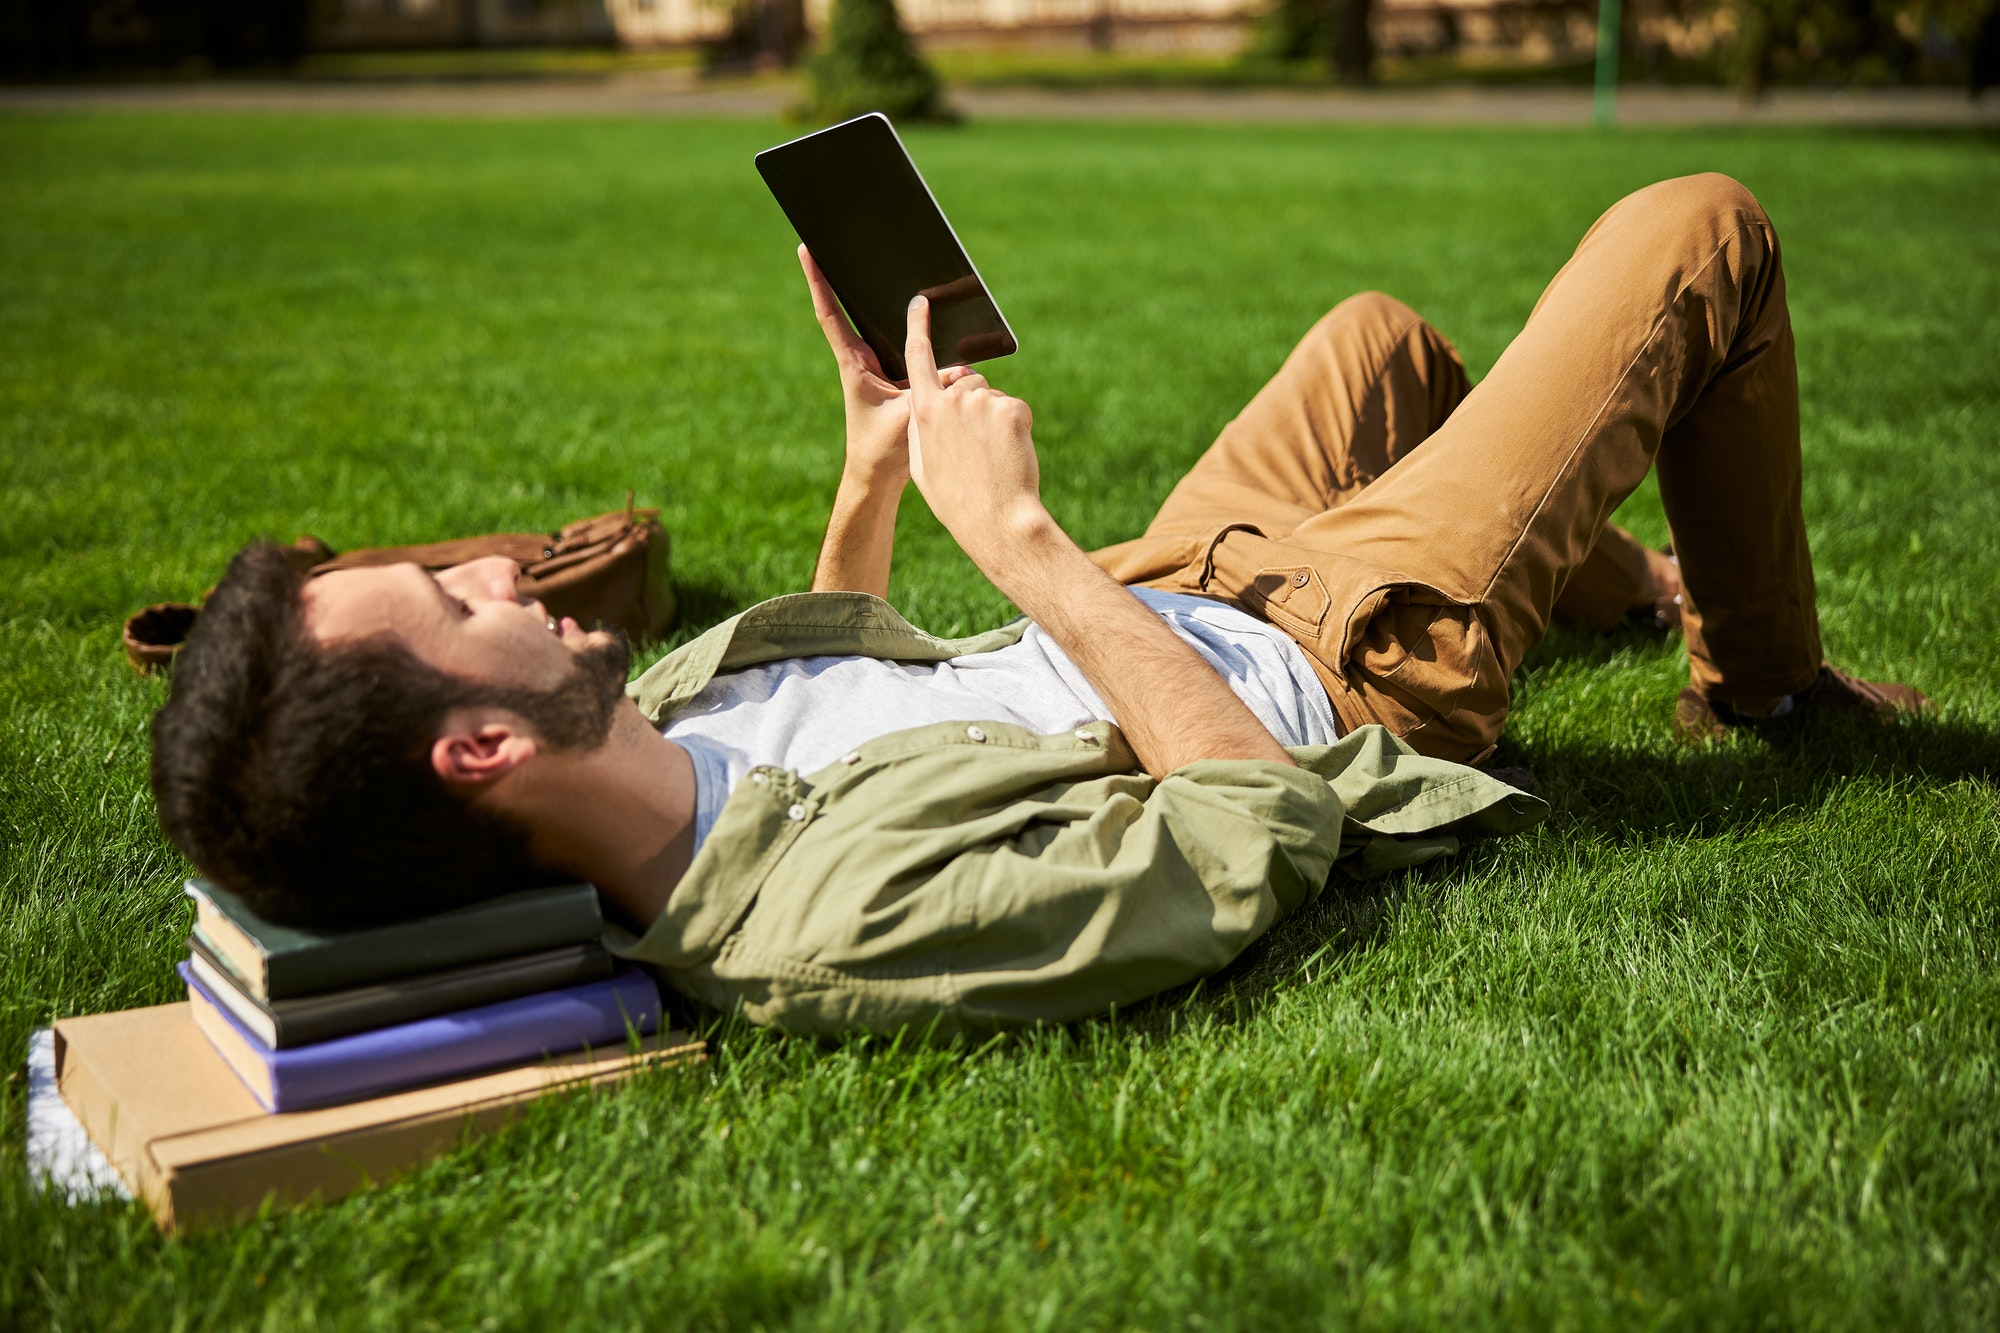 Smiling college student lying on the grass